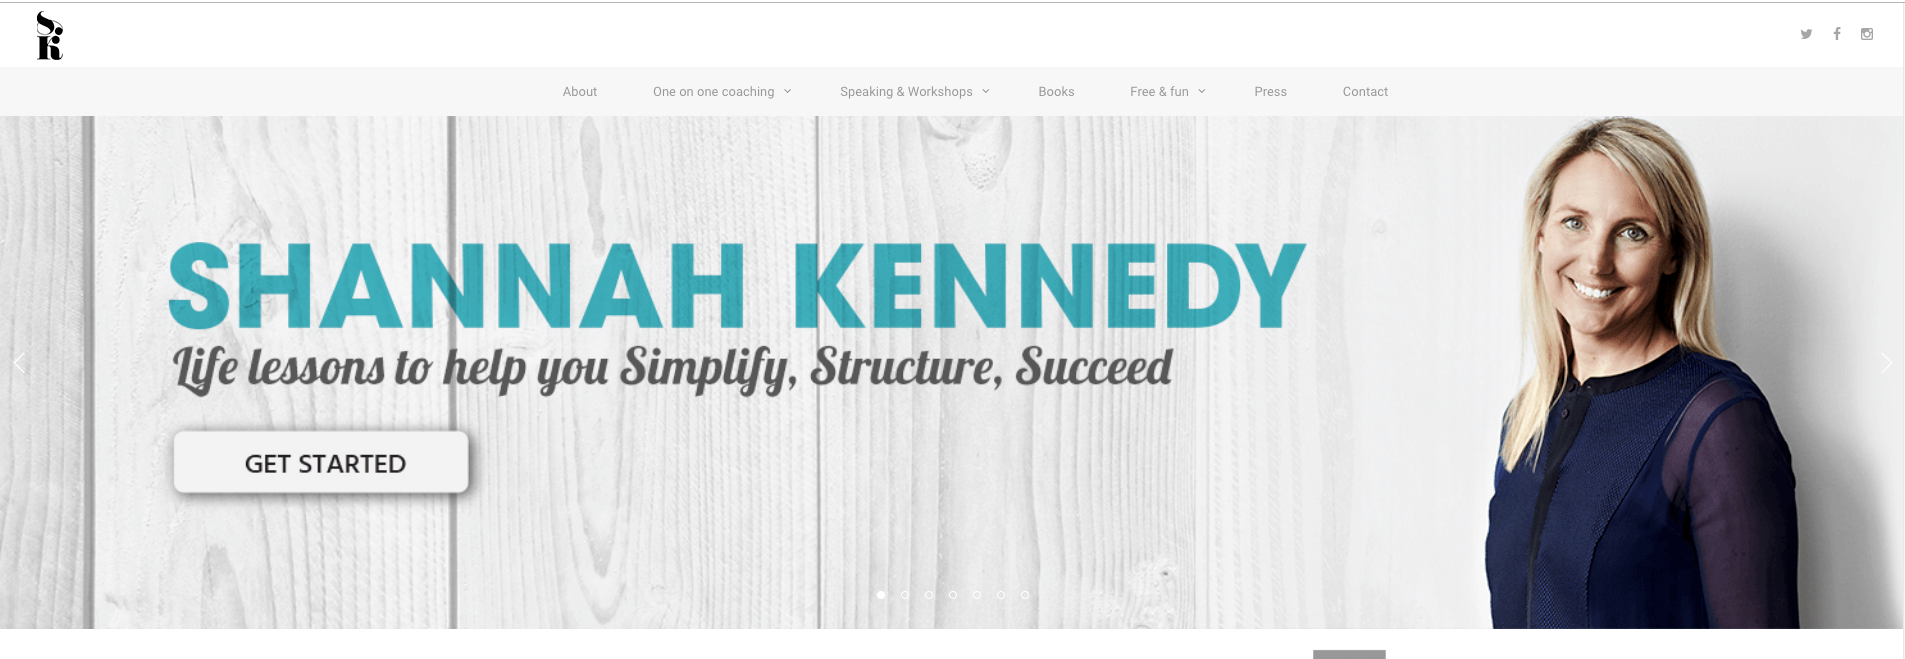 Shannah Kennedy Website